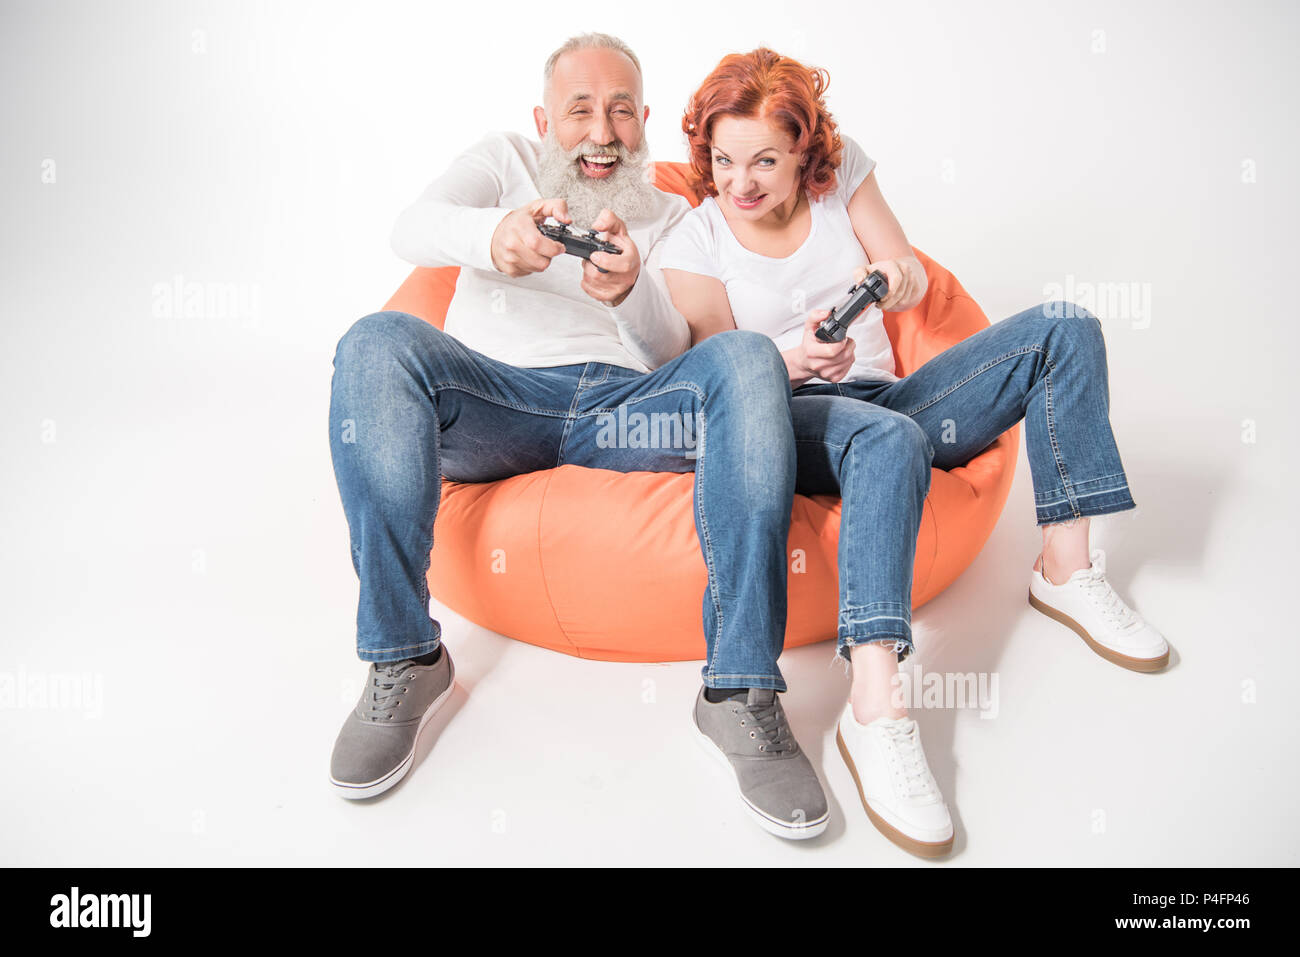 smiling mature couple playing video game with joysticks while sitting in bean bag chair, isolated on white - Stock Image